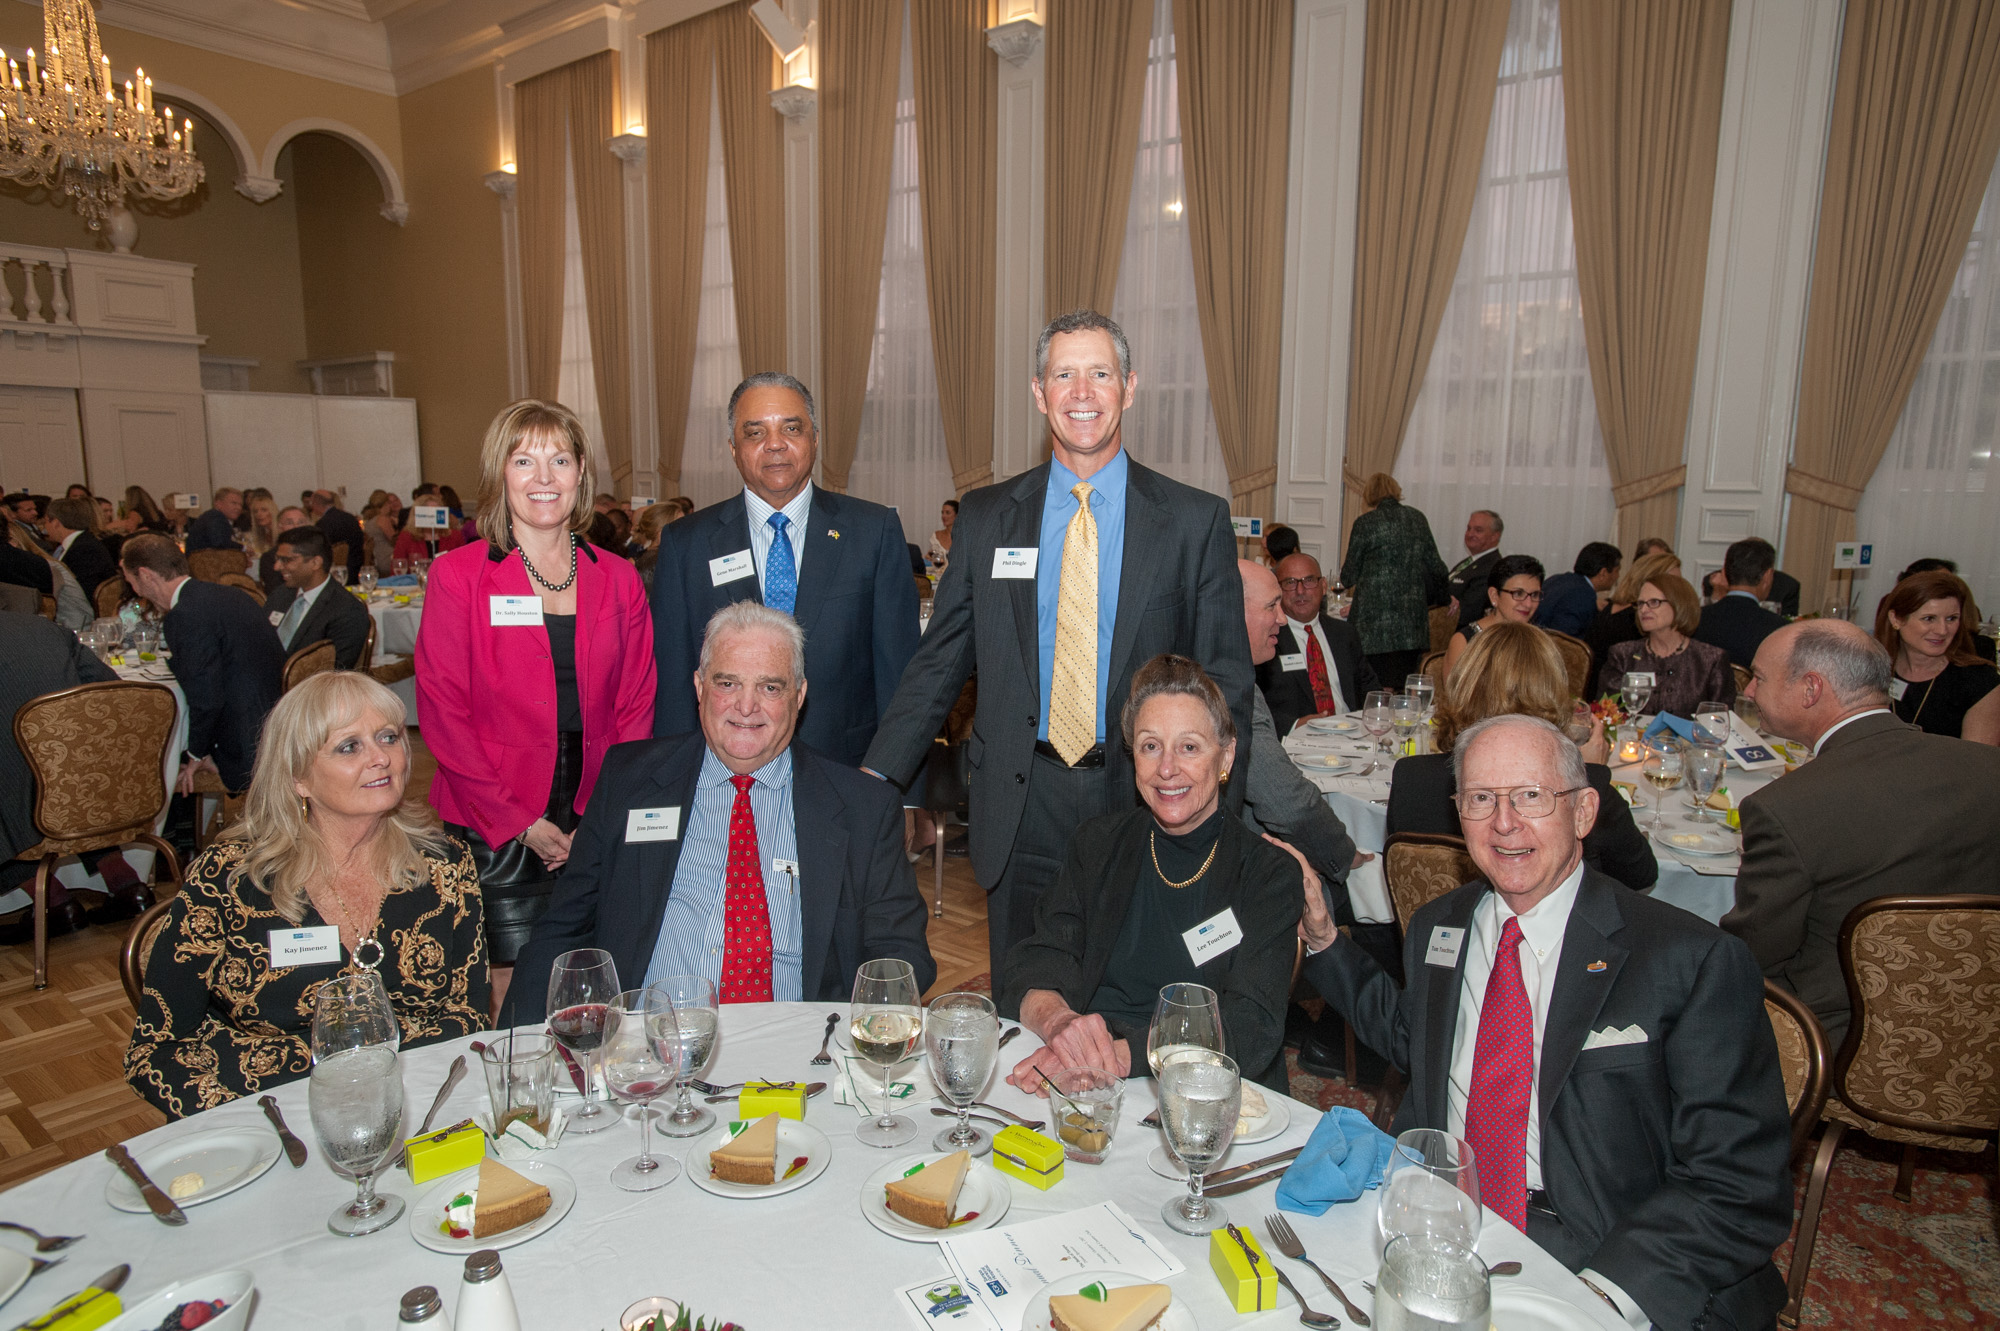 Group photo of patrons at their table during the TGH Foundation dinner.